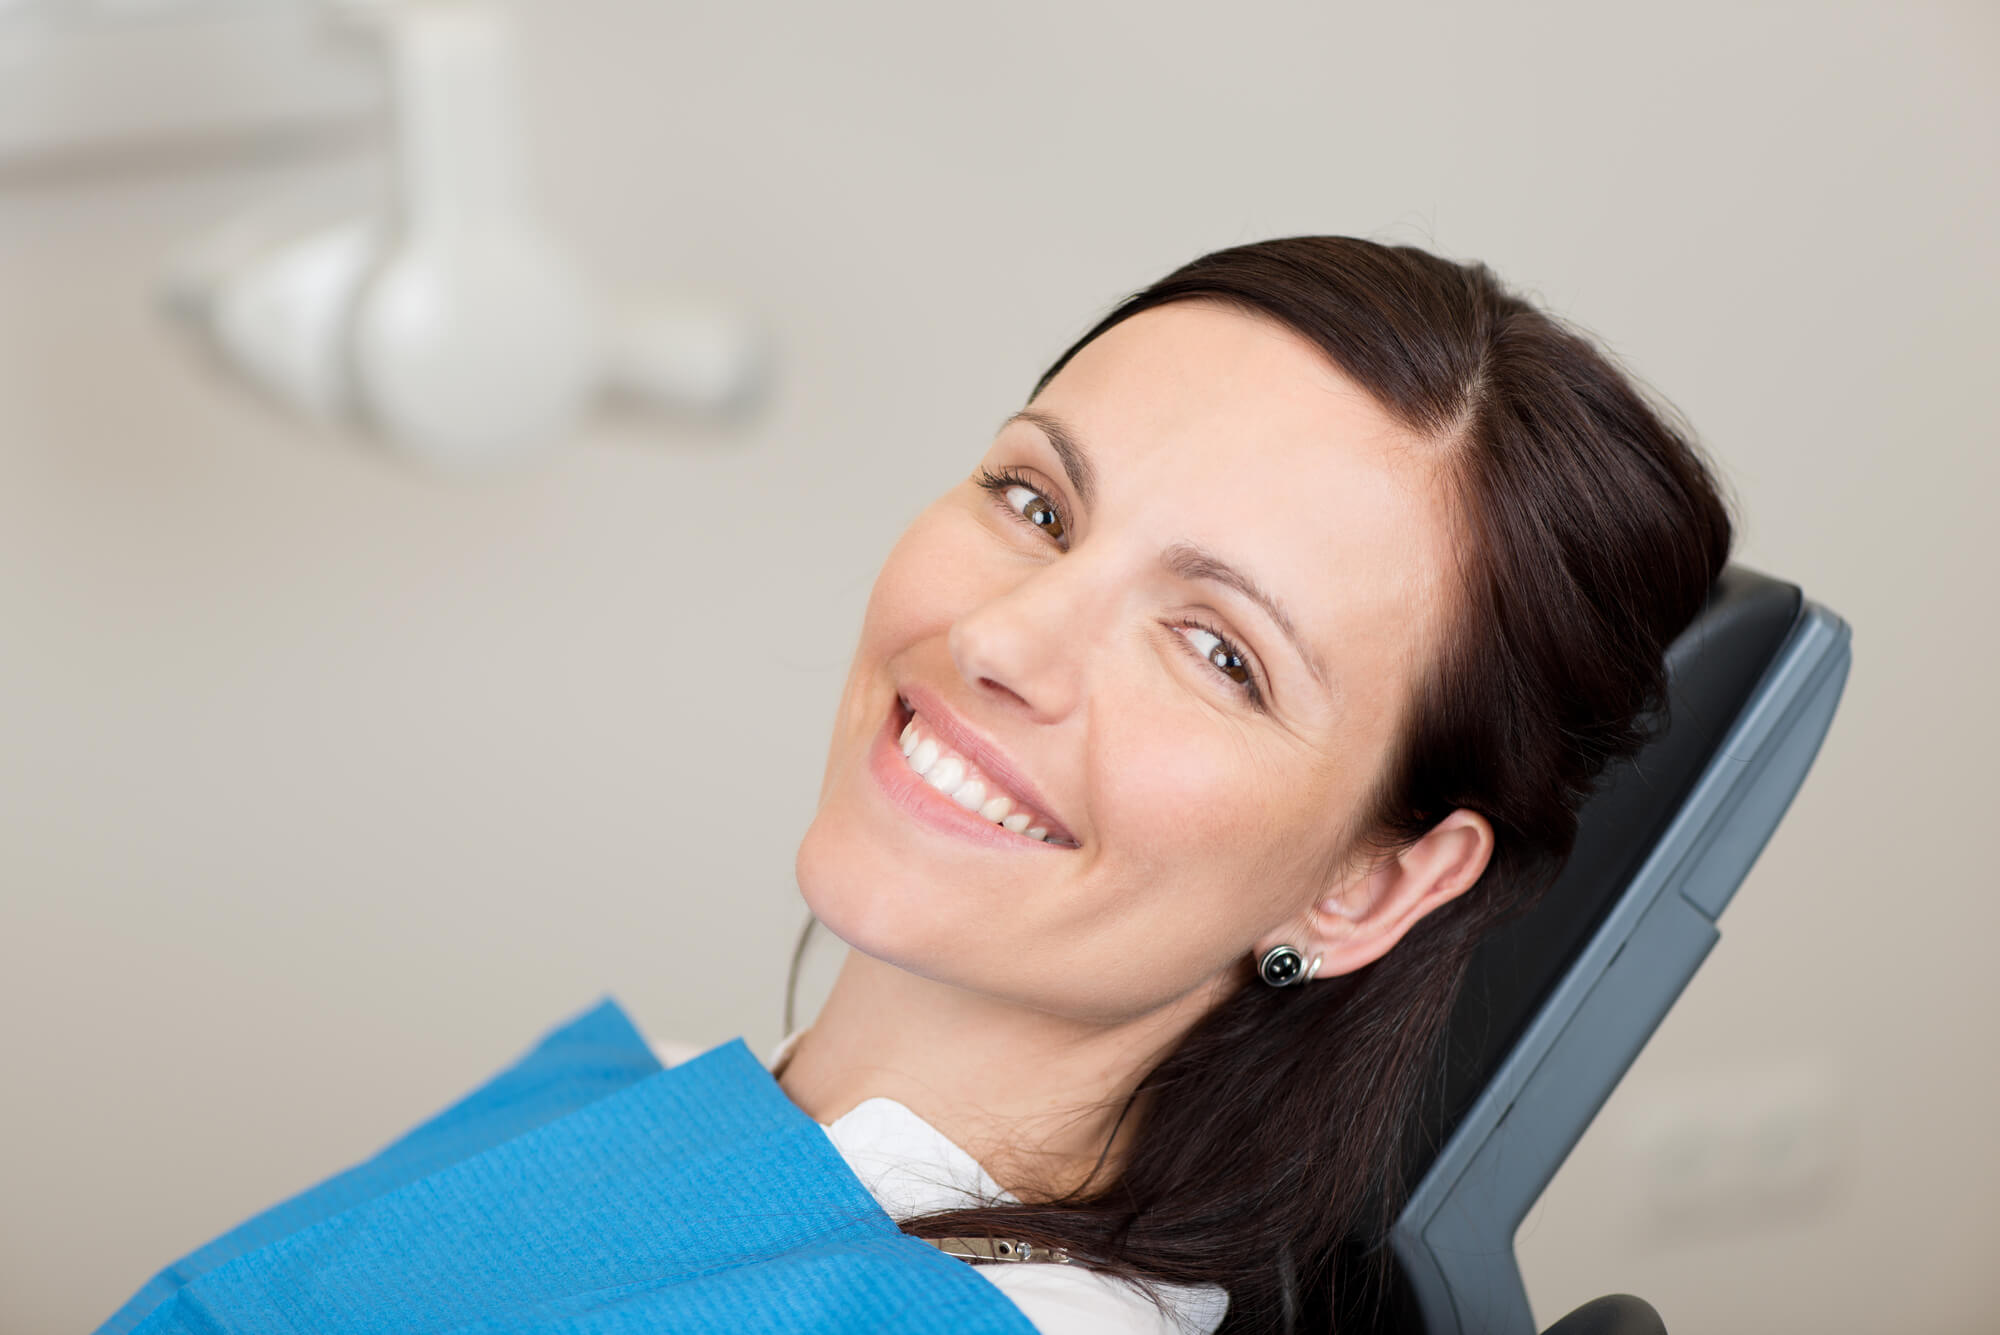 who offers the best dentist 32836?